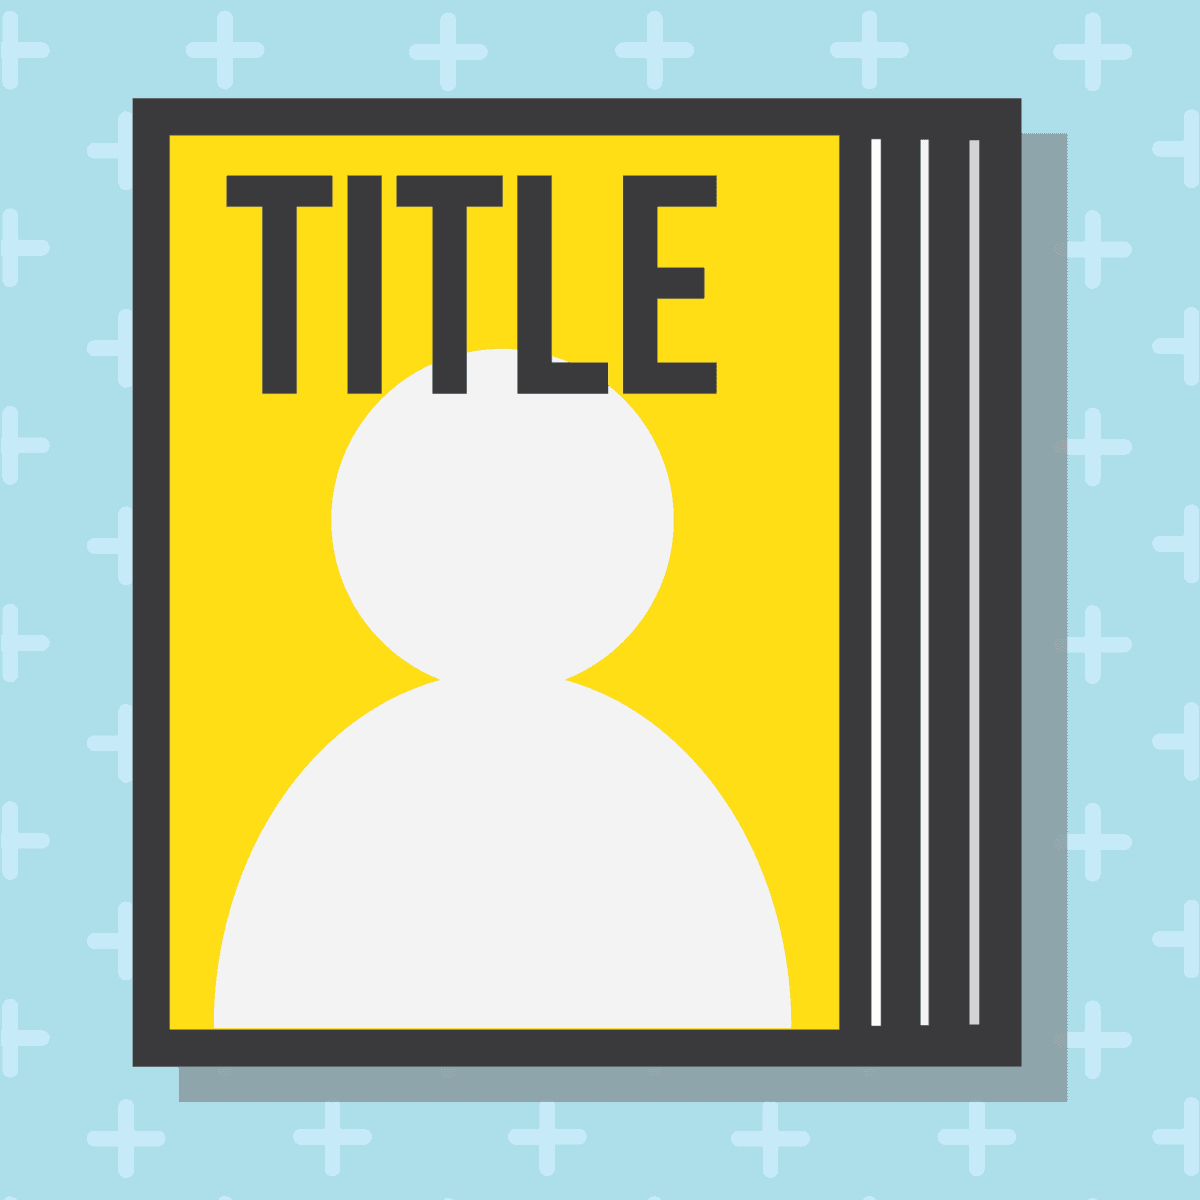 The content of your website: use relevant titles and subsubtitles